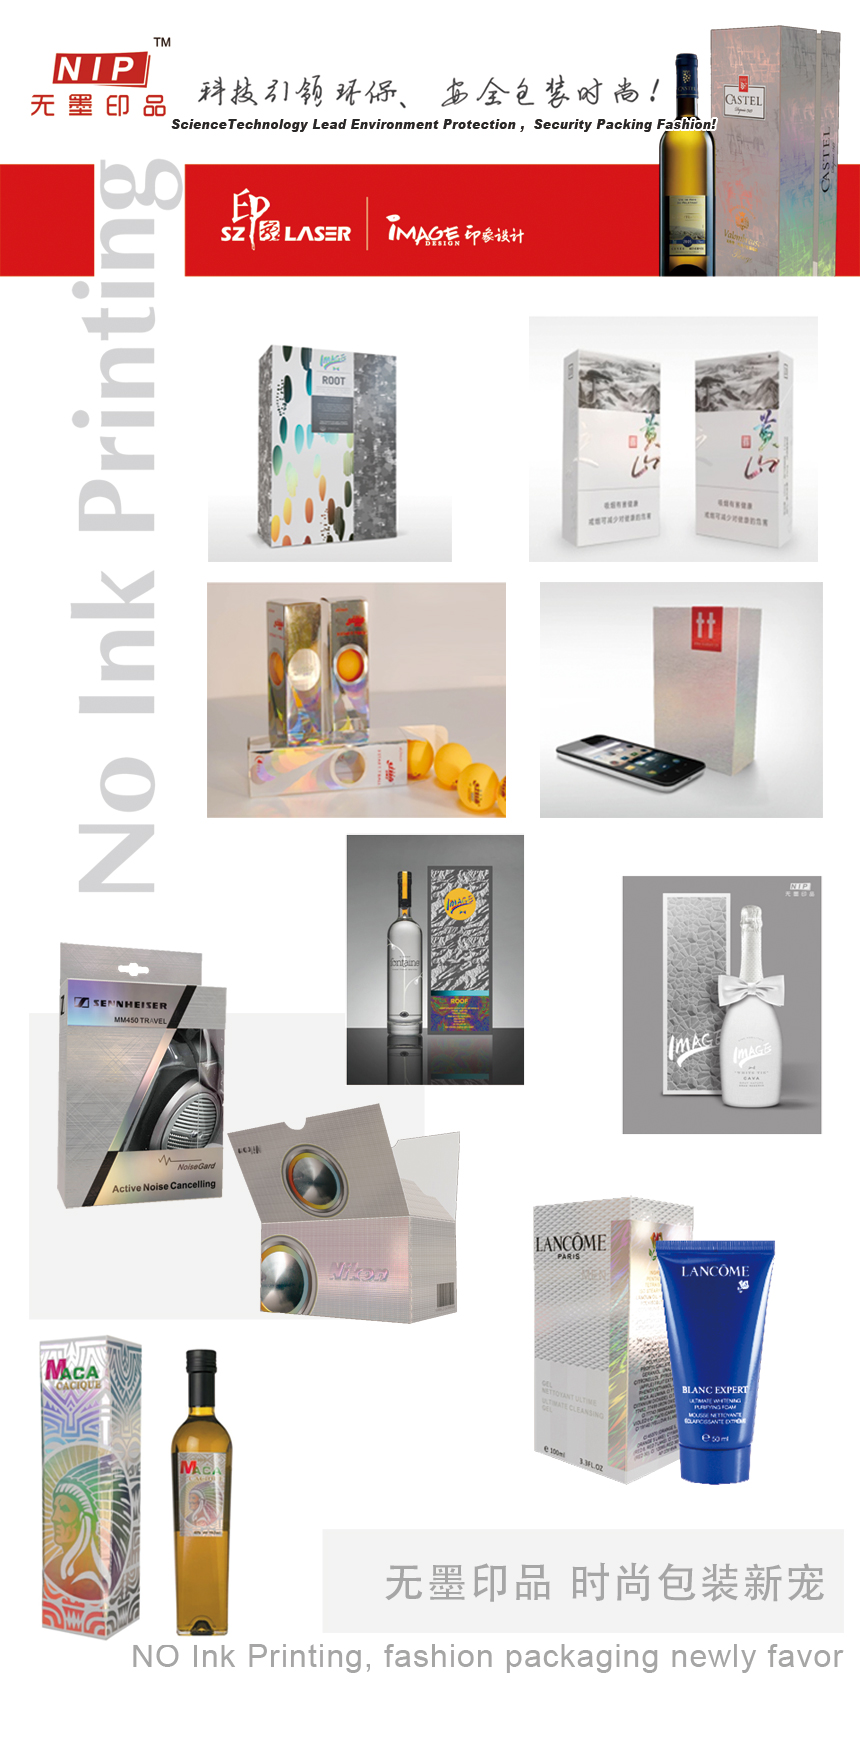 NIP packaging boxes Show- Suzhou Image